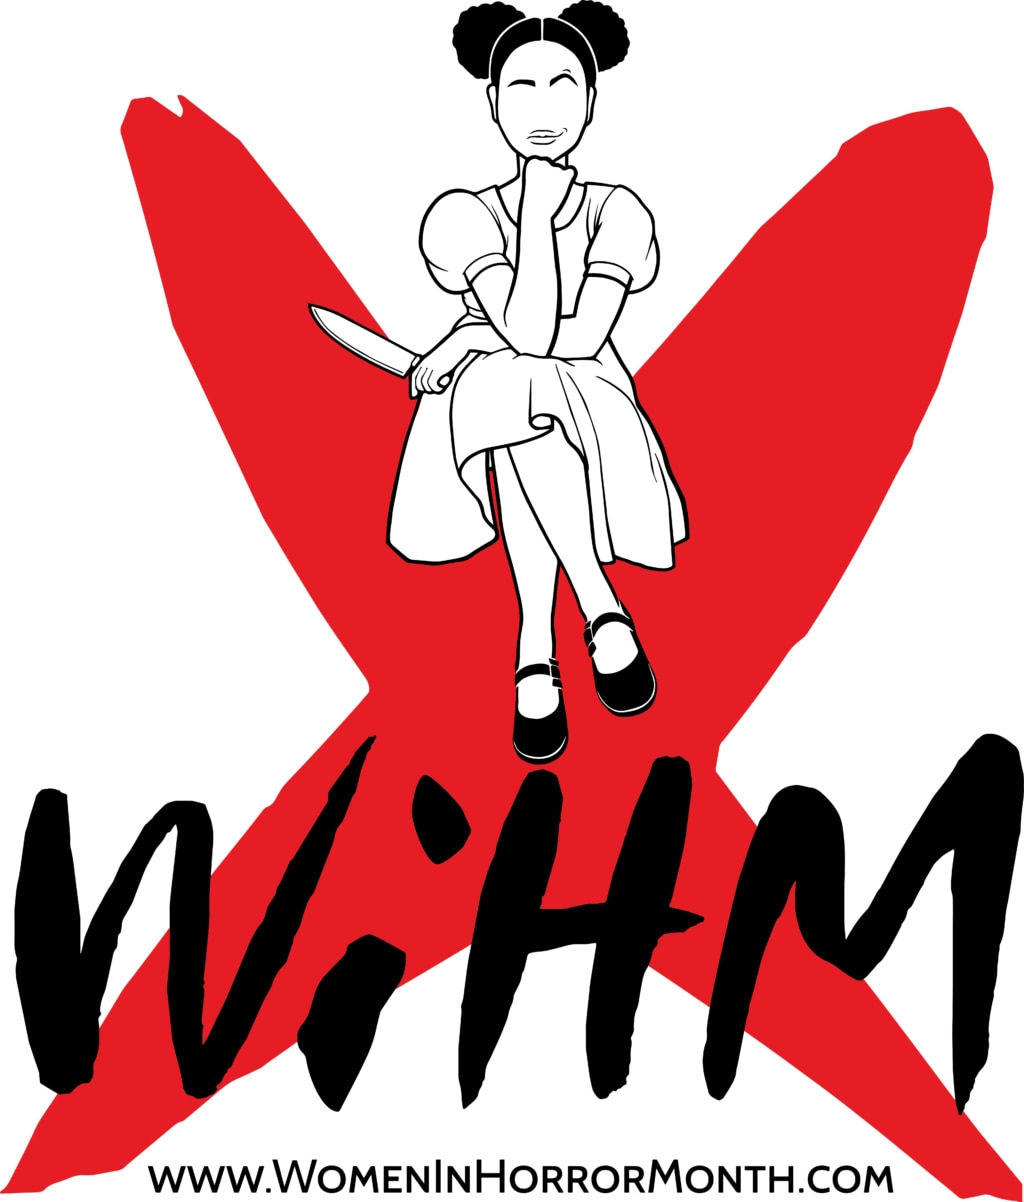 WiHMX vertical BlackWhiteBG 1024x1202 - Exclusive: Organizer Miki Hickel on the History, Significance, and Future of WOMEN IN HORROR MONTH